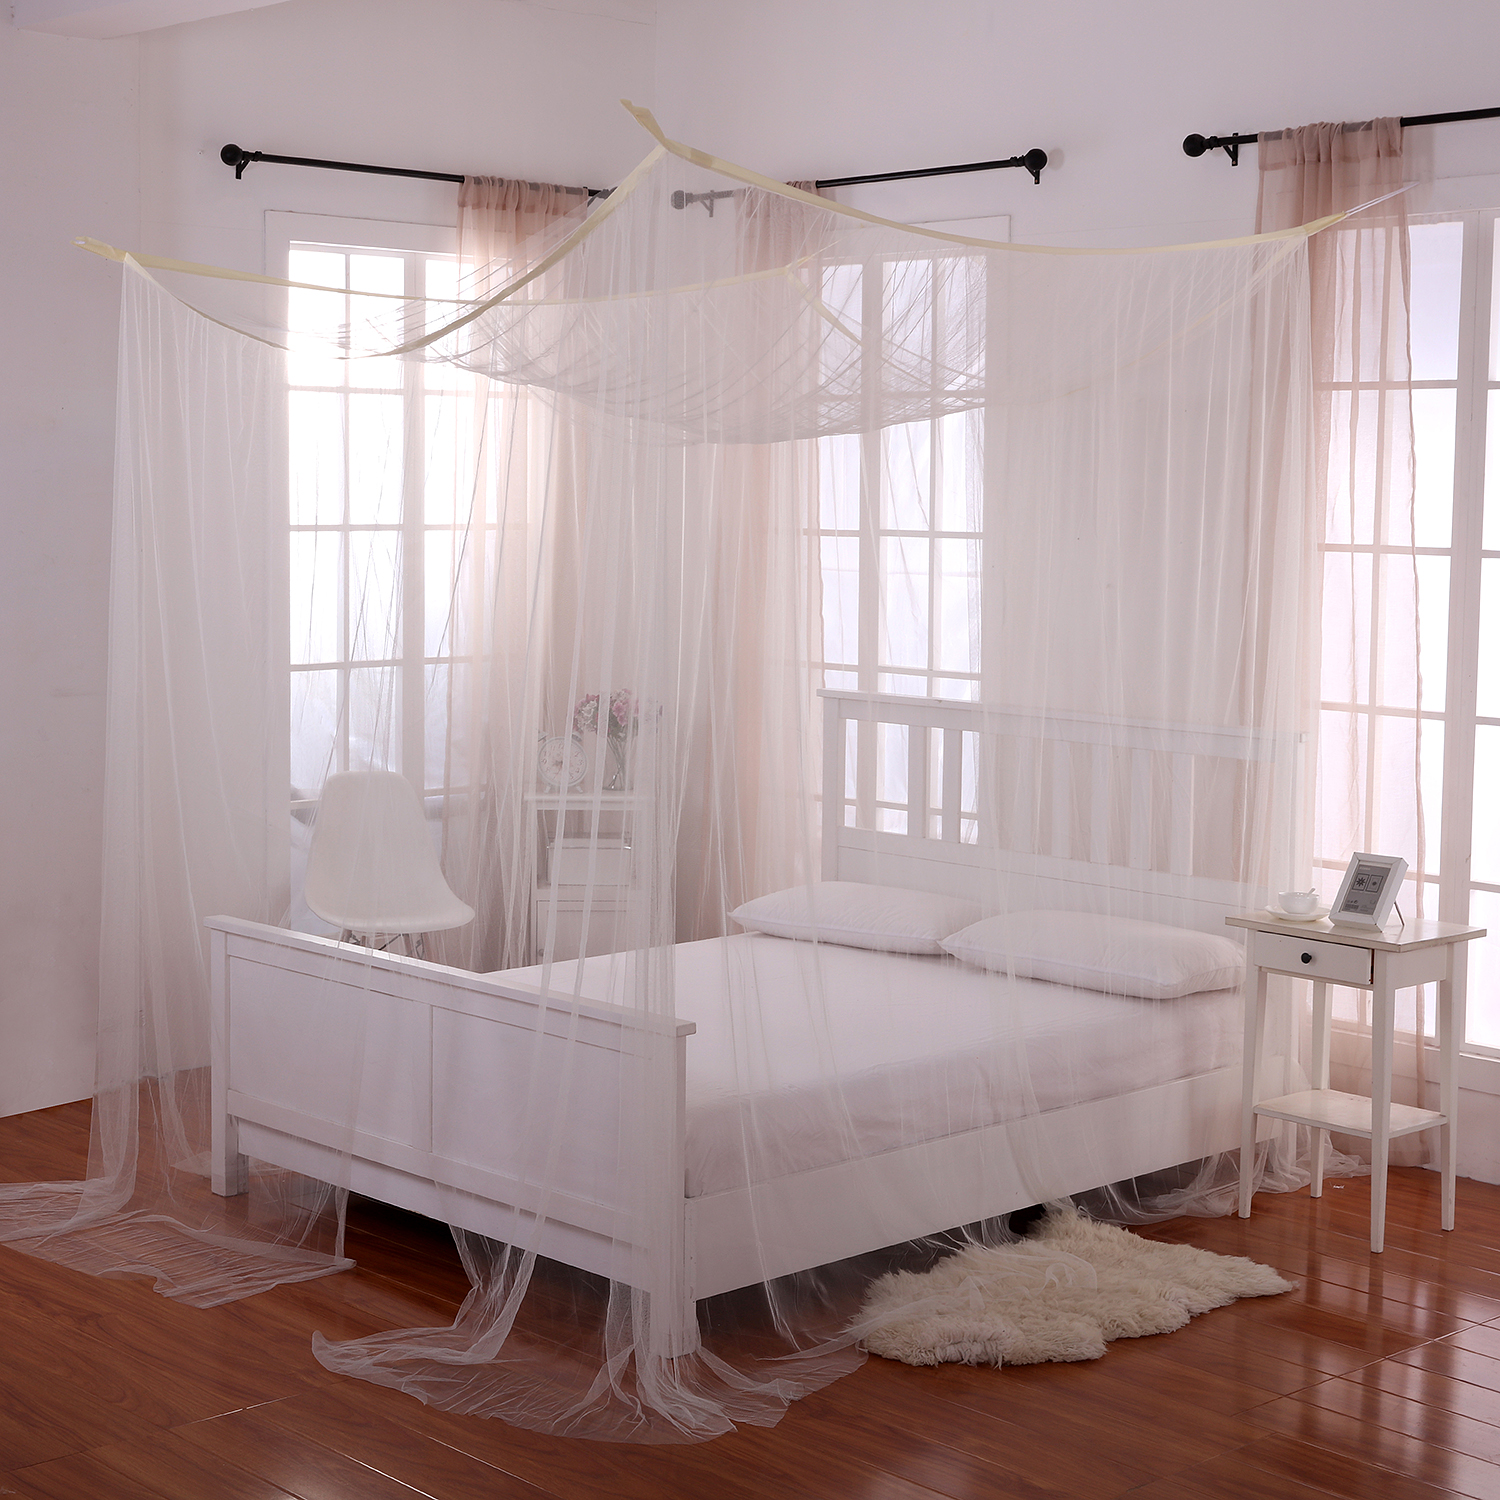 canopy bed curtains casablanca palace 4-post bed sheer panel canopy CUJARDR